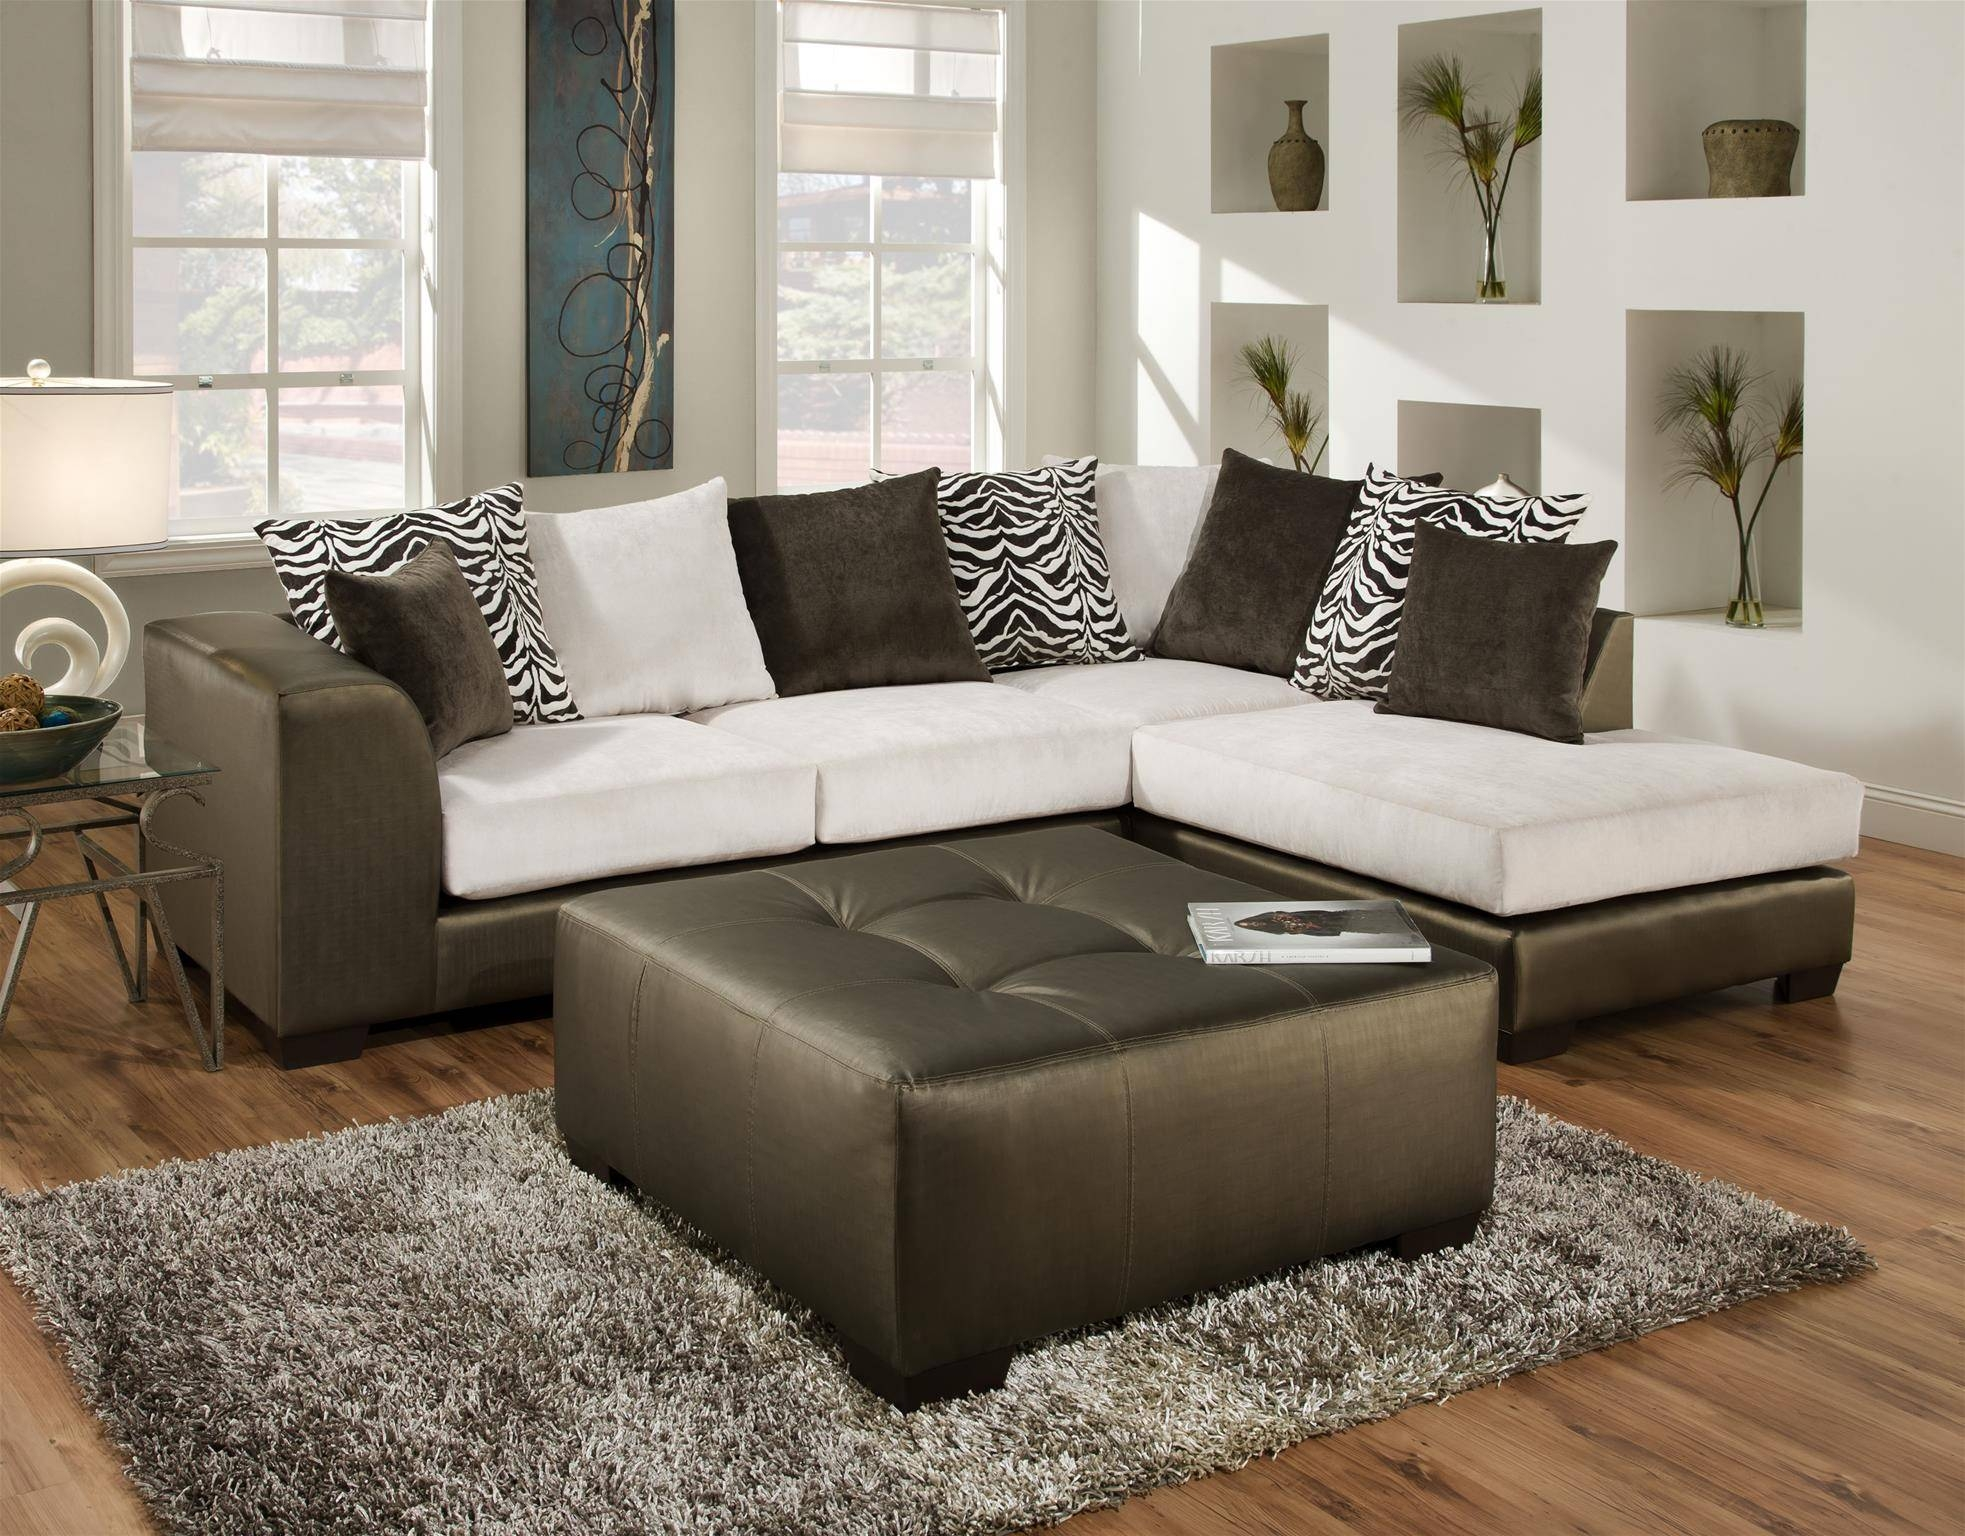 New Sectional Sofas Tampa 14 In 10 Foot Sectional Sofa With intended for 10 Foot Sectional Sofa (Image 24 of 30)